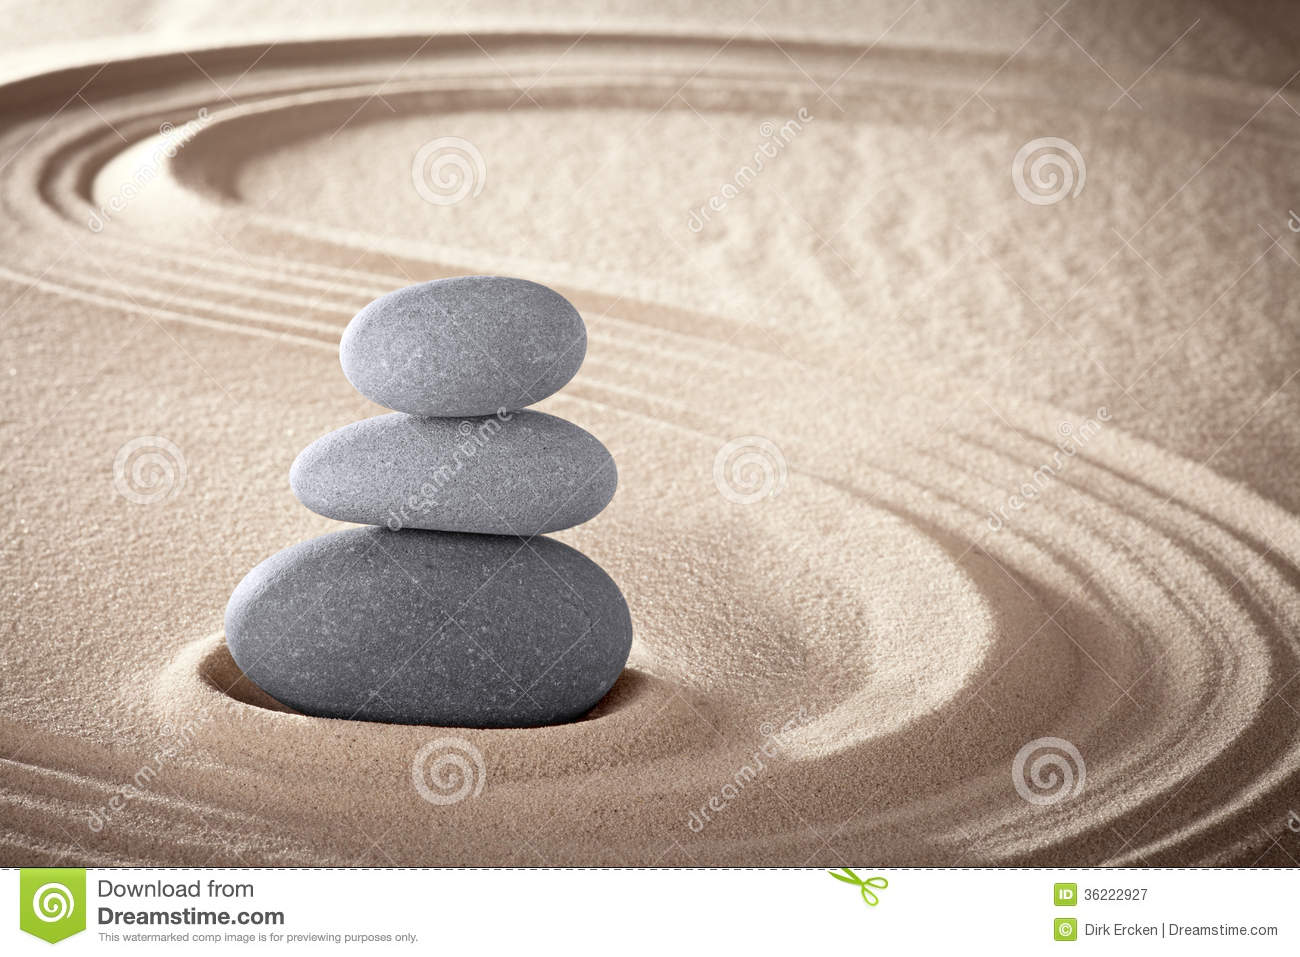 buddhism meditation as a balance This article discussed the dharma wheel, known as the dharmachakra, as a symbol in buddhism, including variations in the depiction of the symbol.